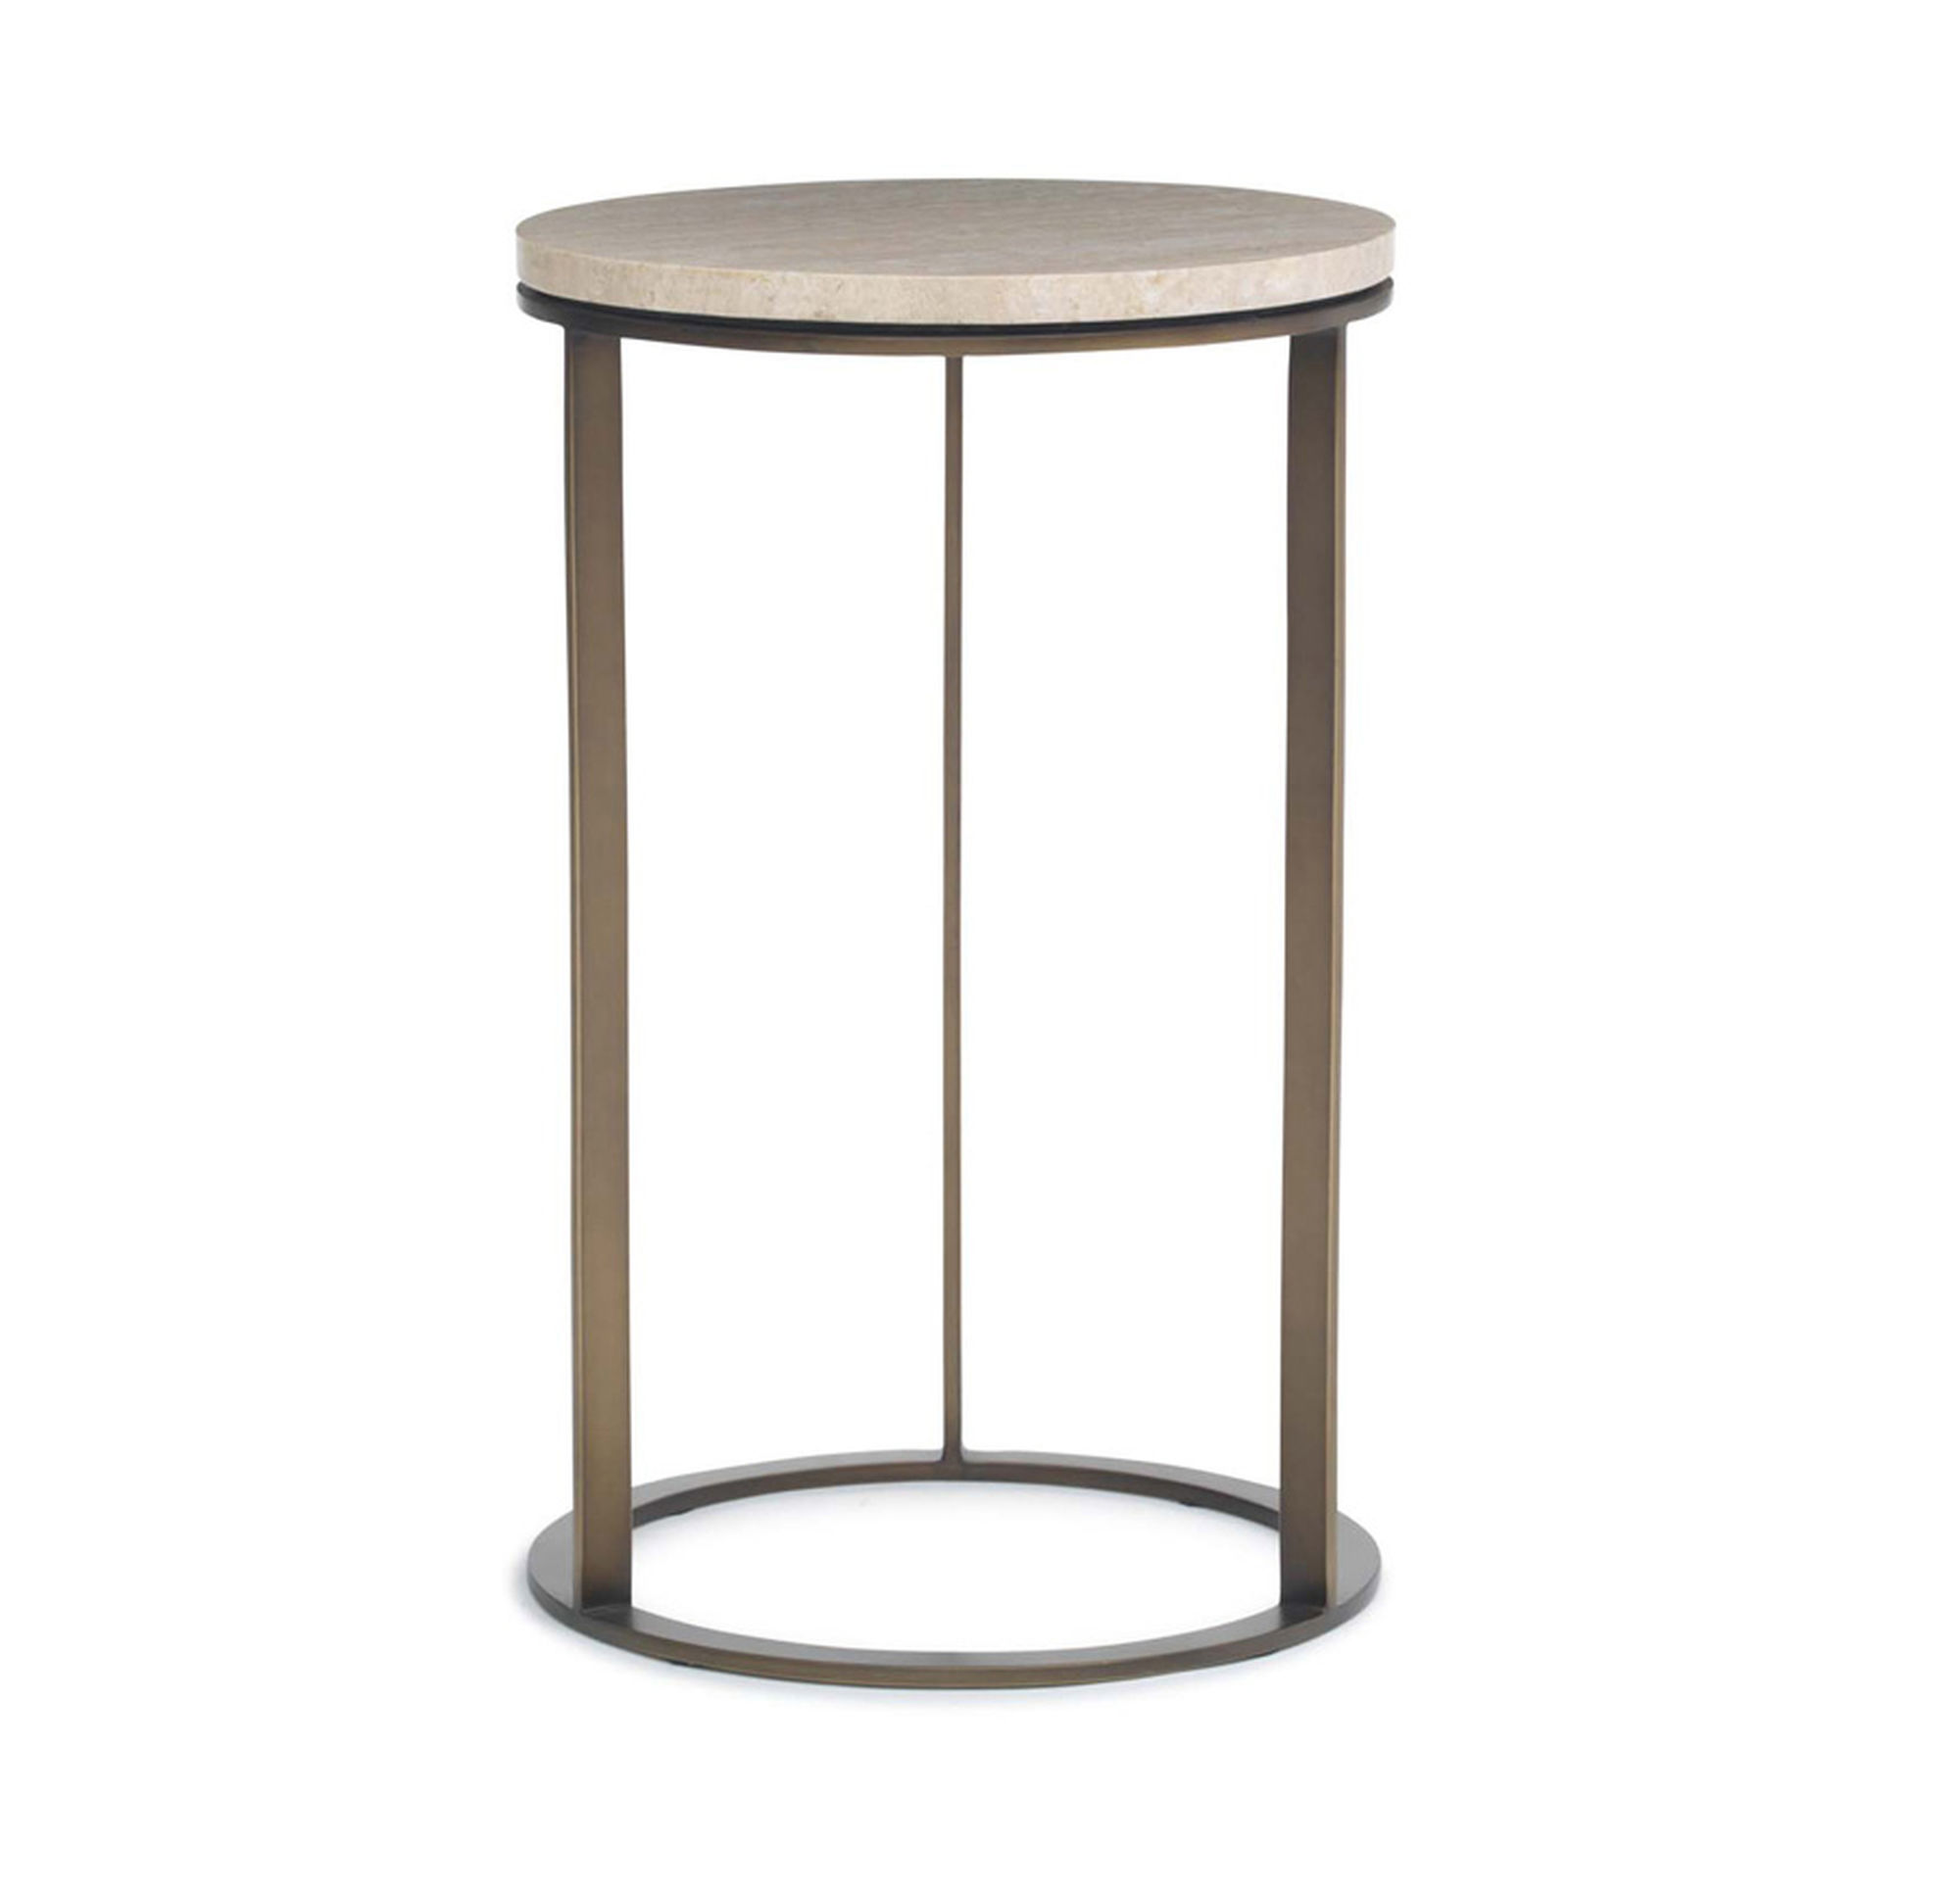 allure pull table hero accent collections res furniture tables high round target curtain rods pier one imports dining room mosaic outdoor and chairs barn wood sofa drum paper lamp